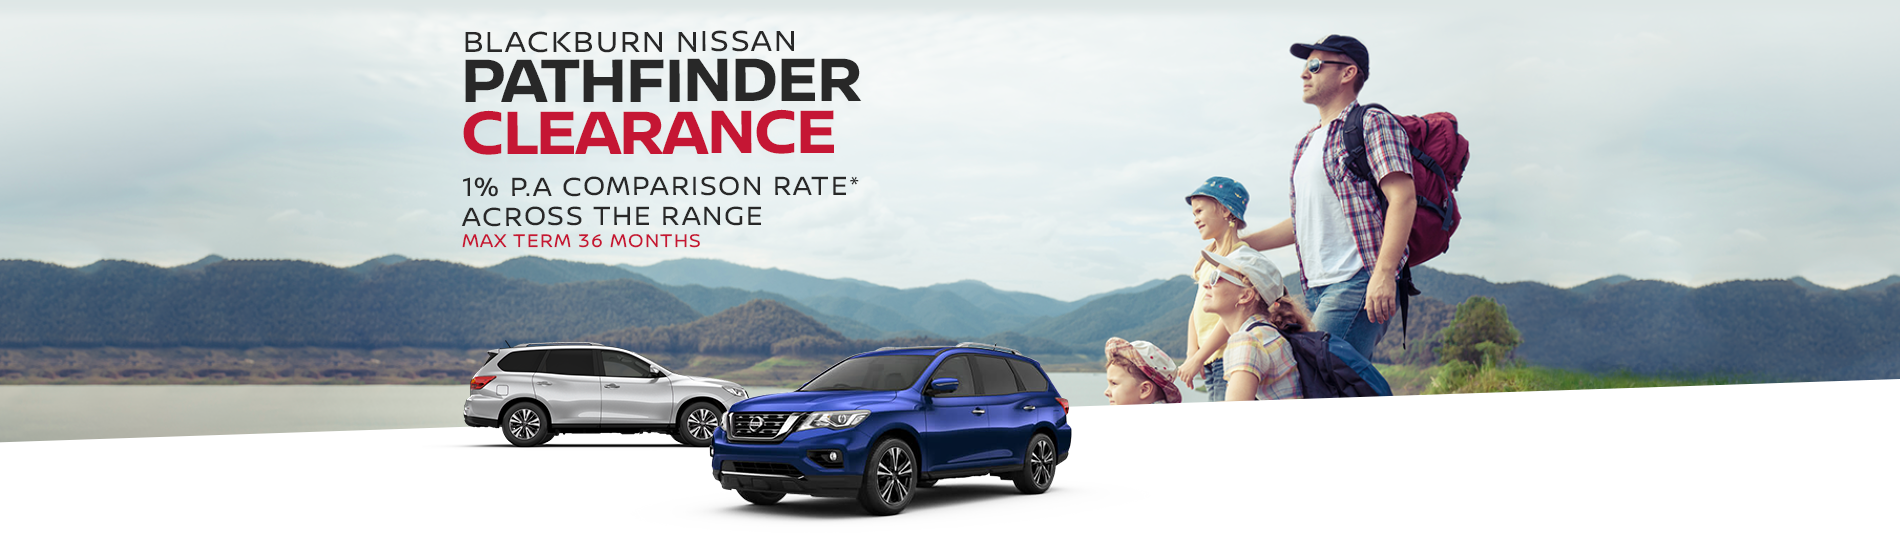 Pathfinder Clearance